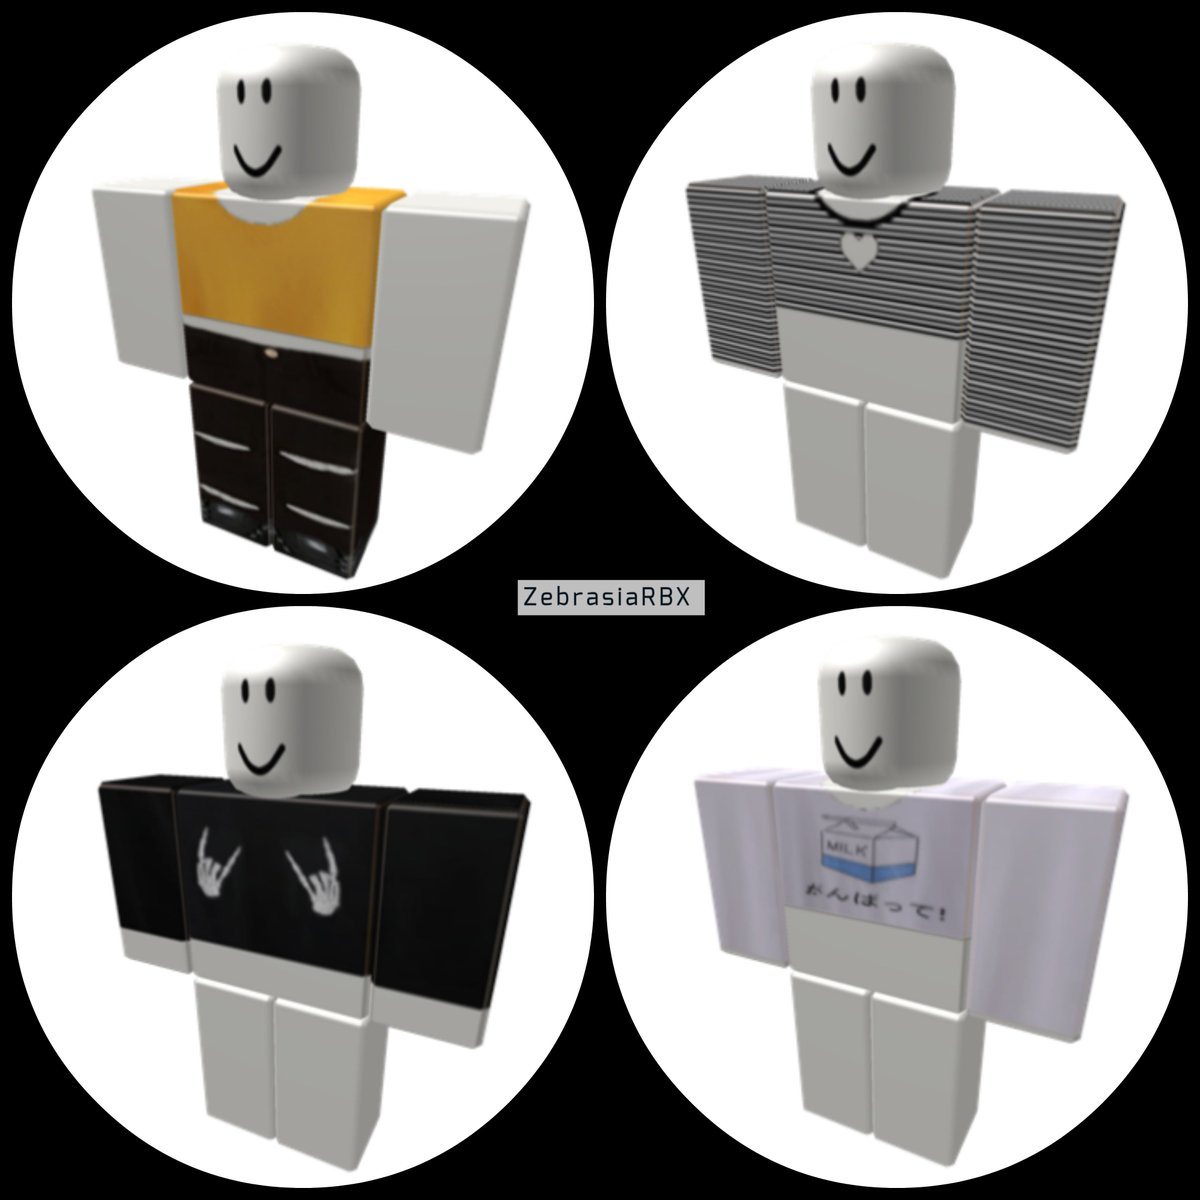 Etiqueta Robloxcheapclothes En Twitter - aesthetic outfits for roblox